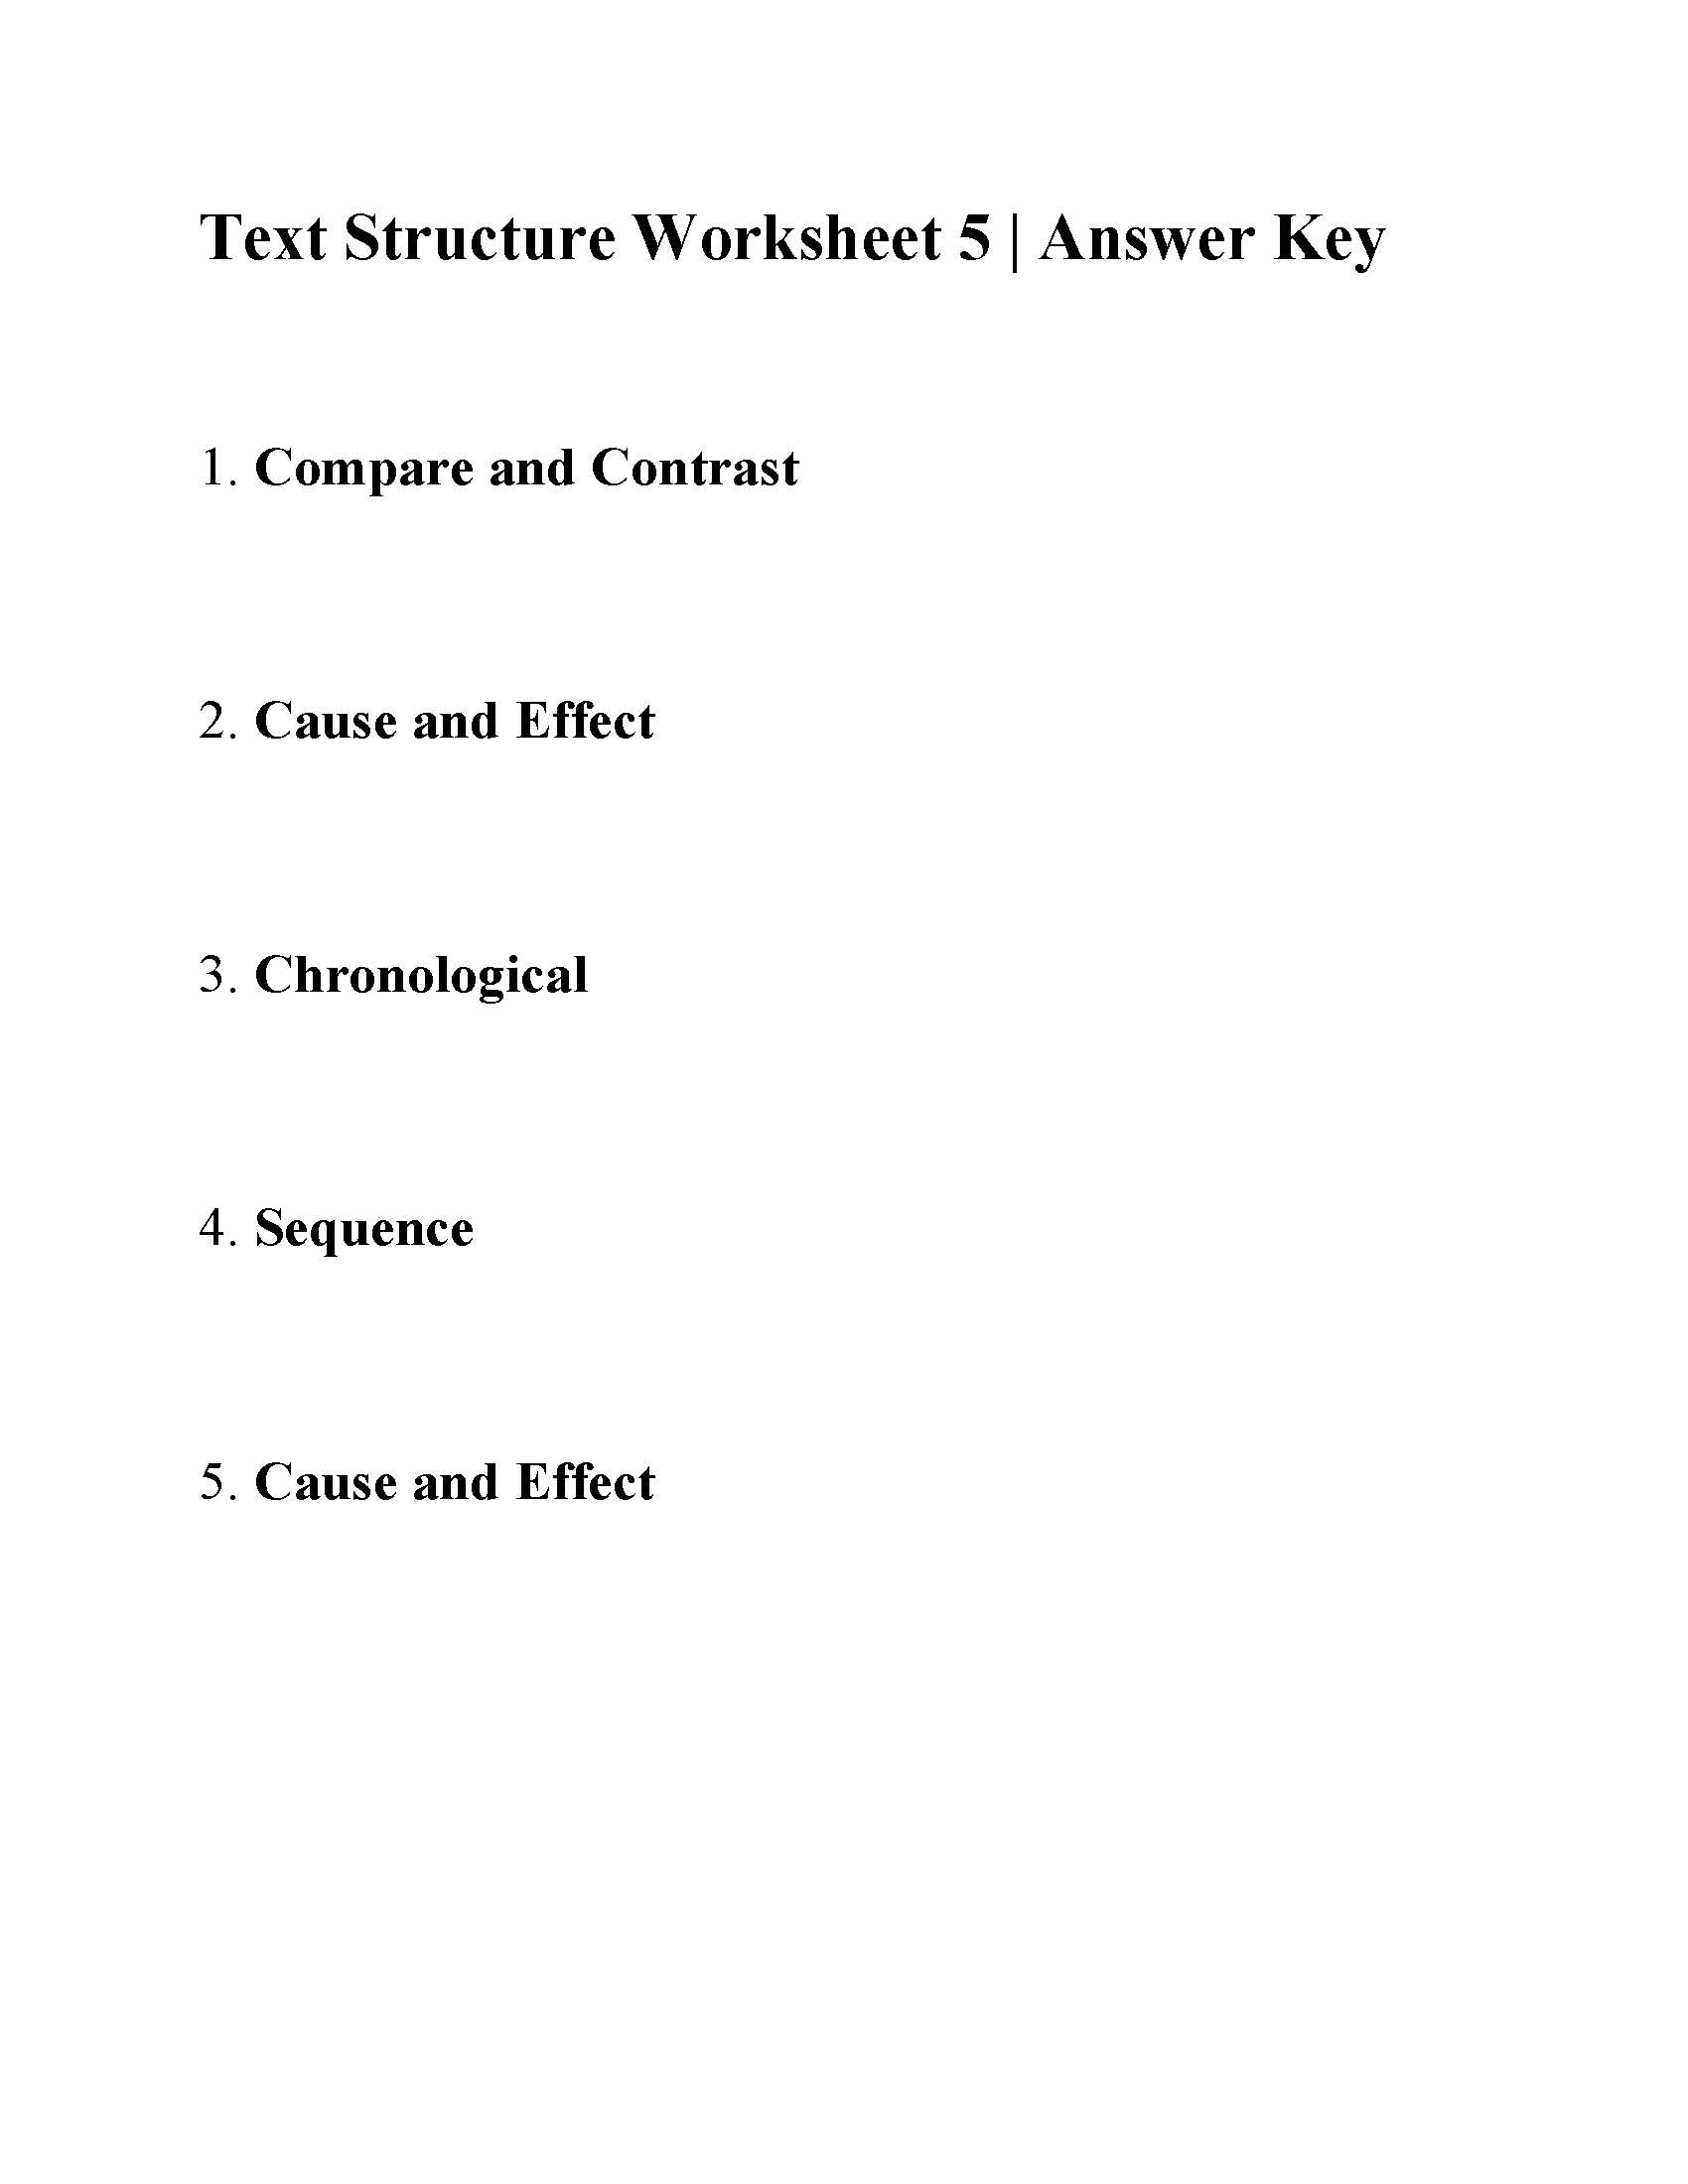 Text Structure Worksheet 5